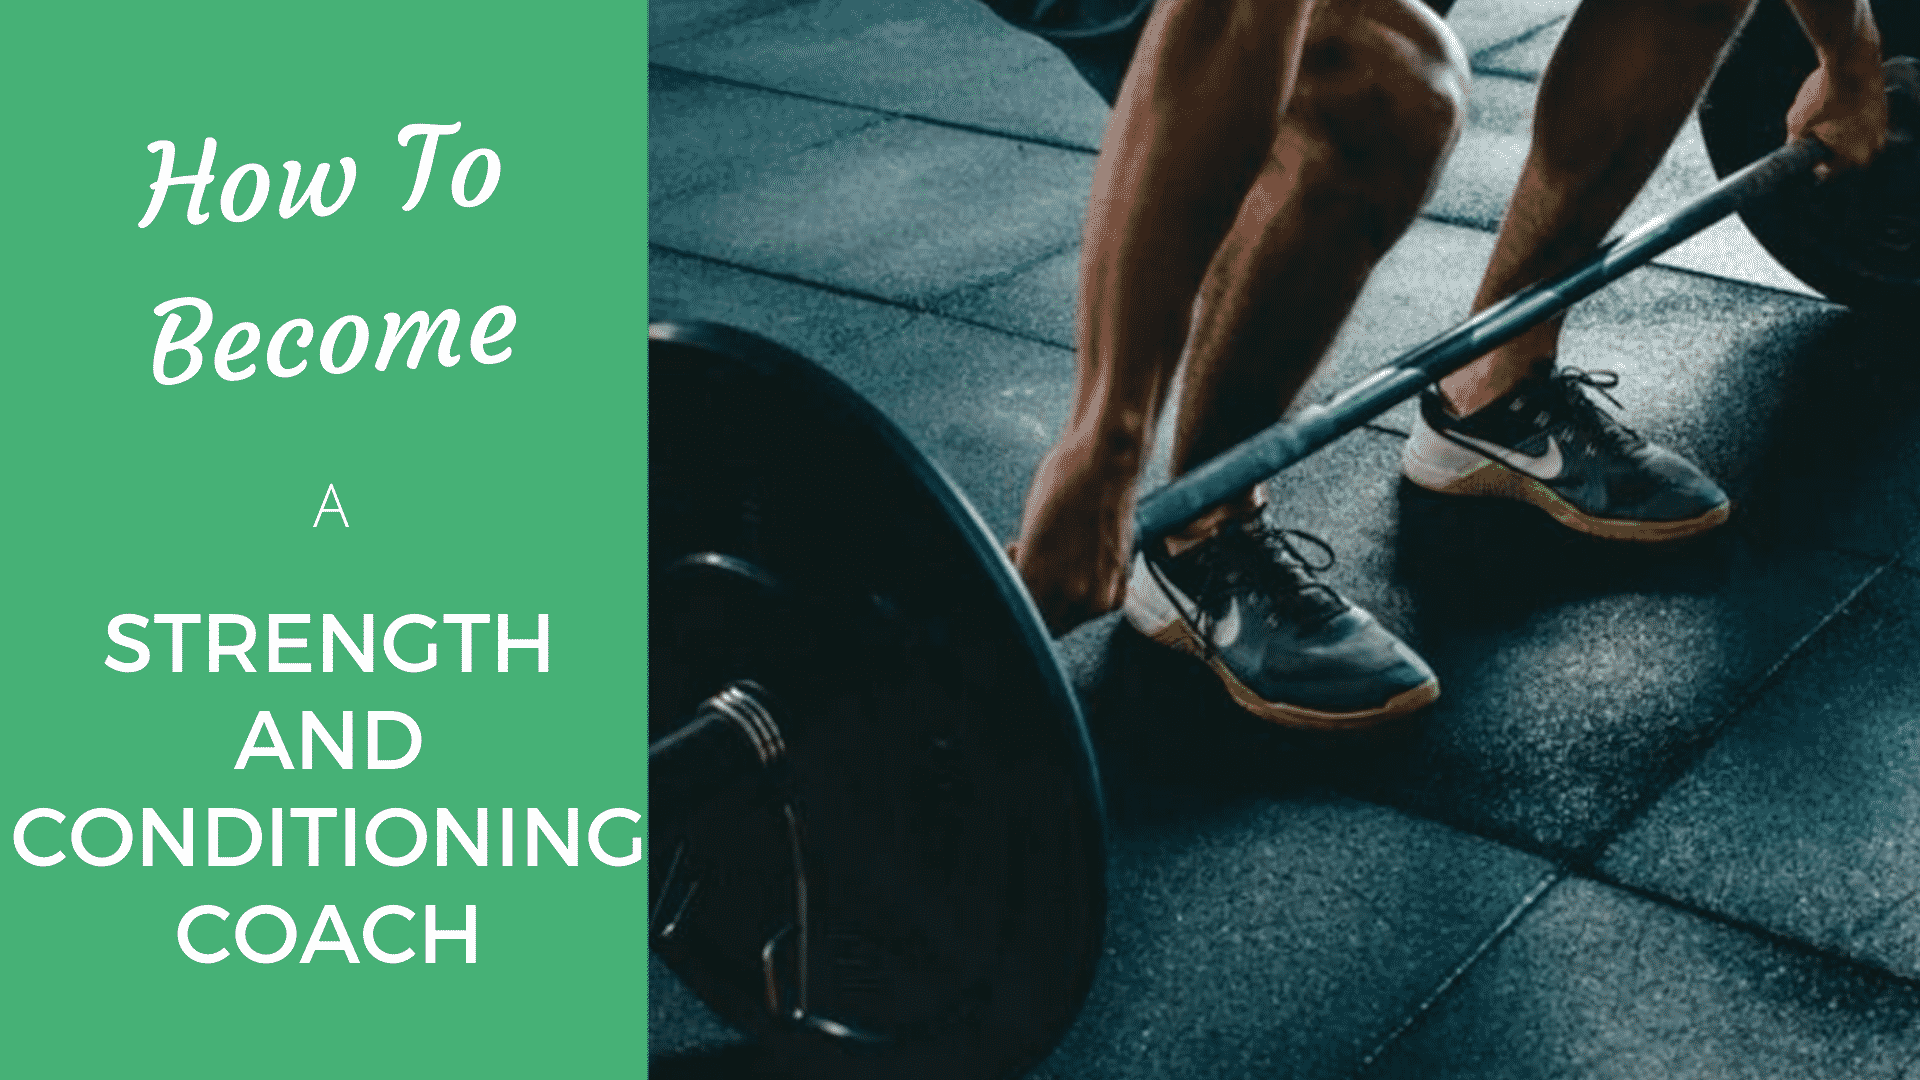 Become a Strength and Conditioning Coach